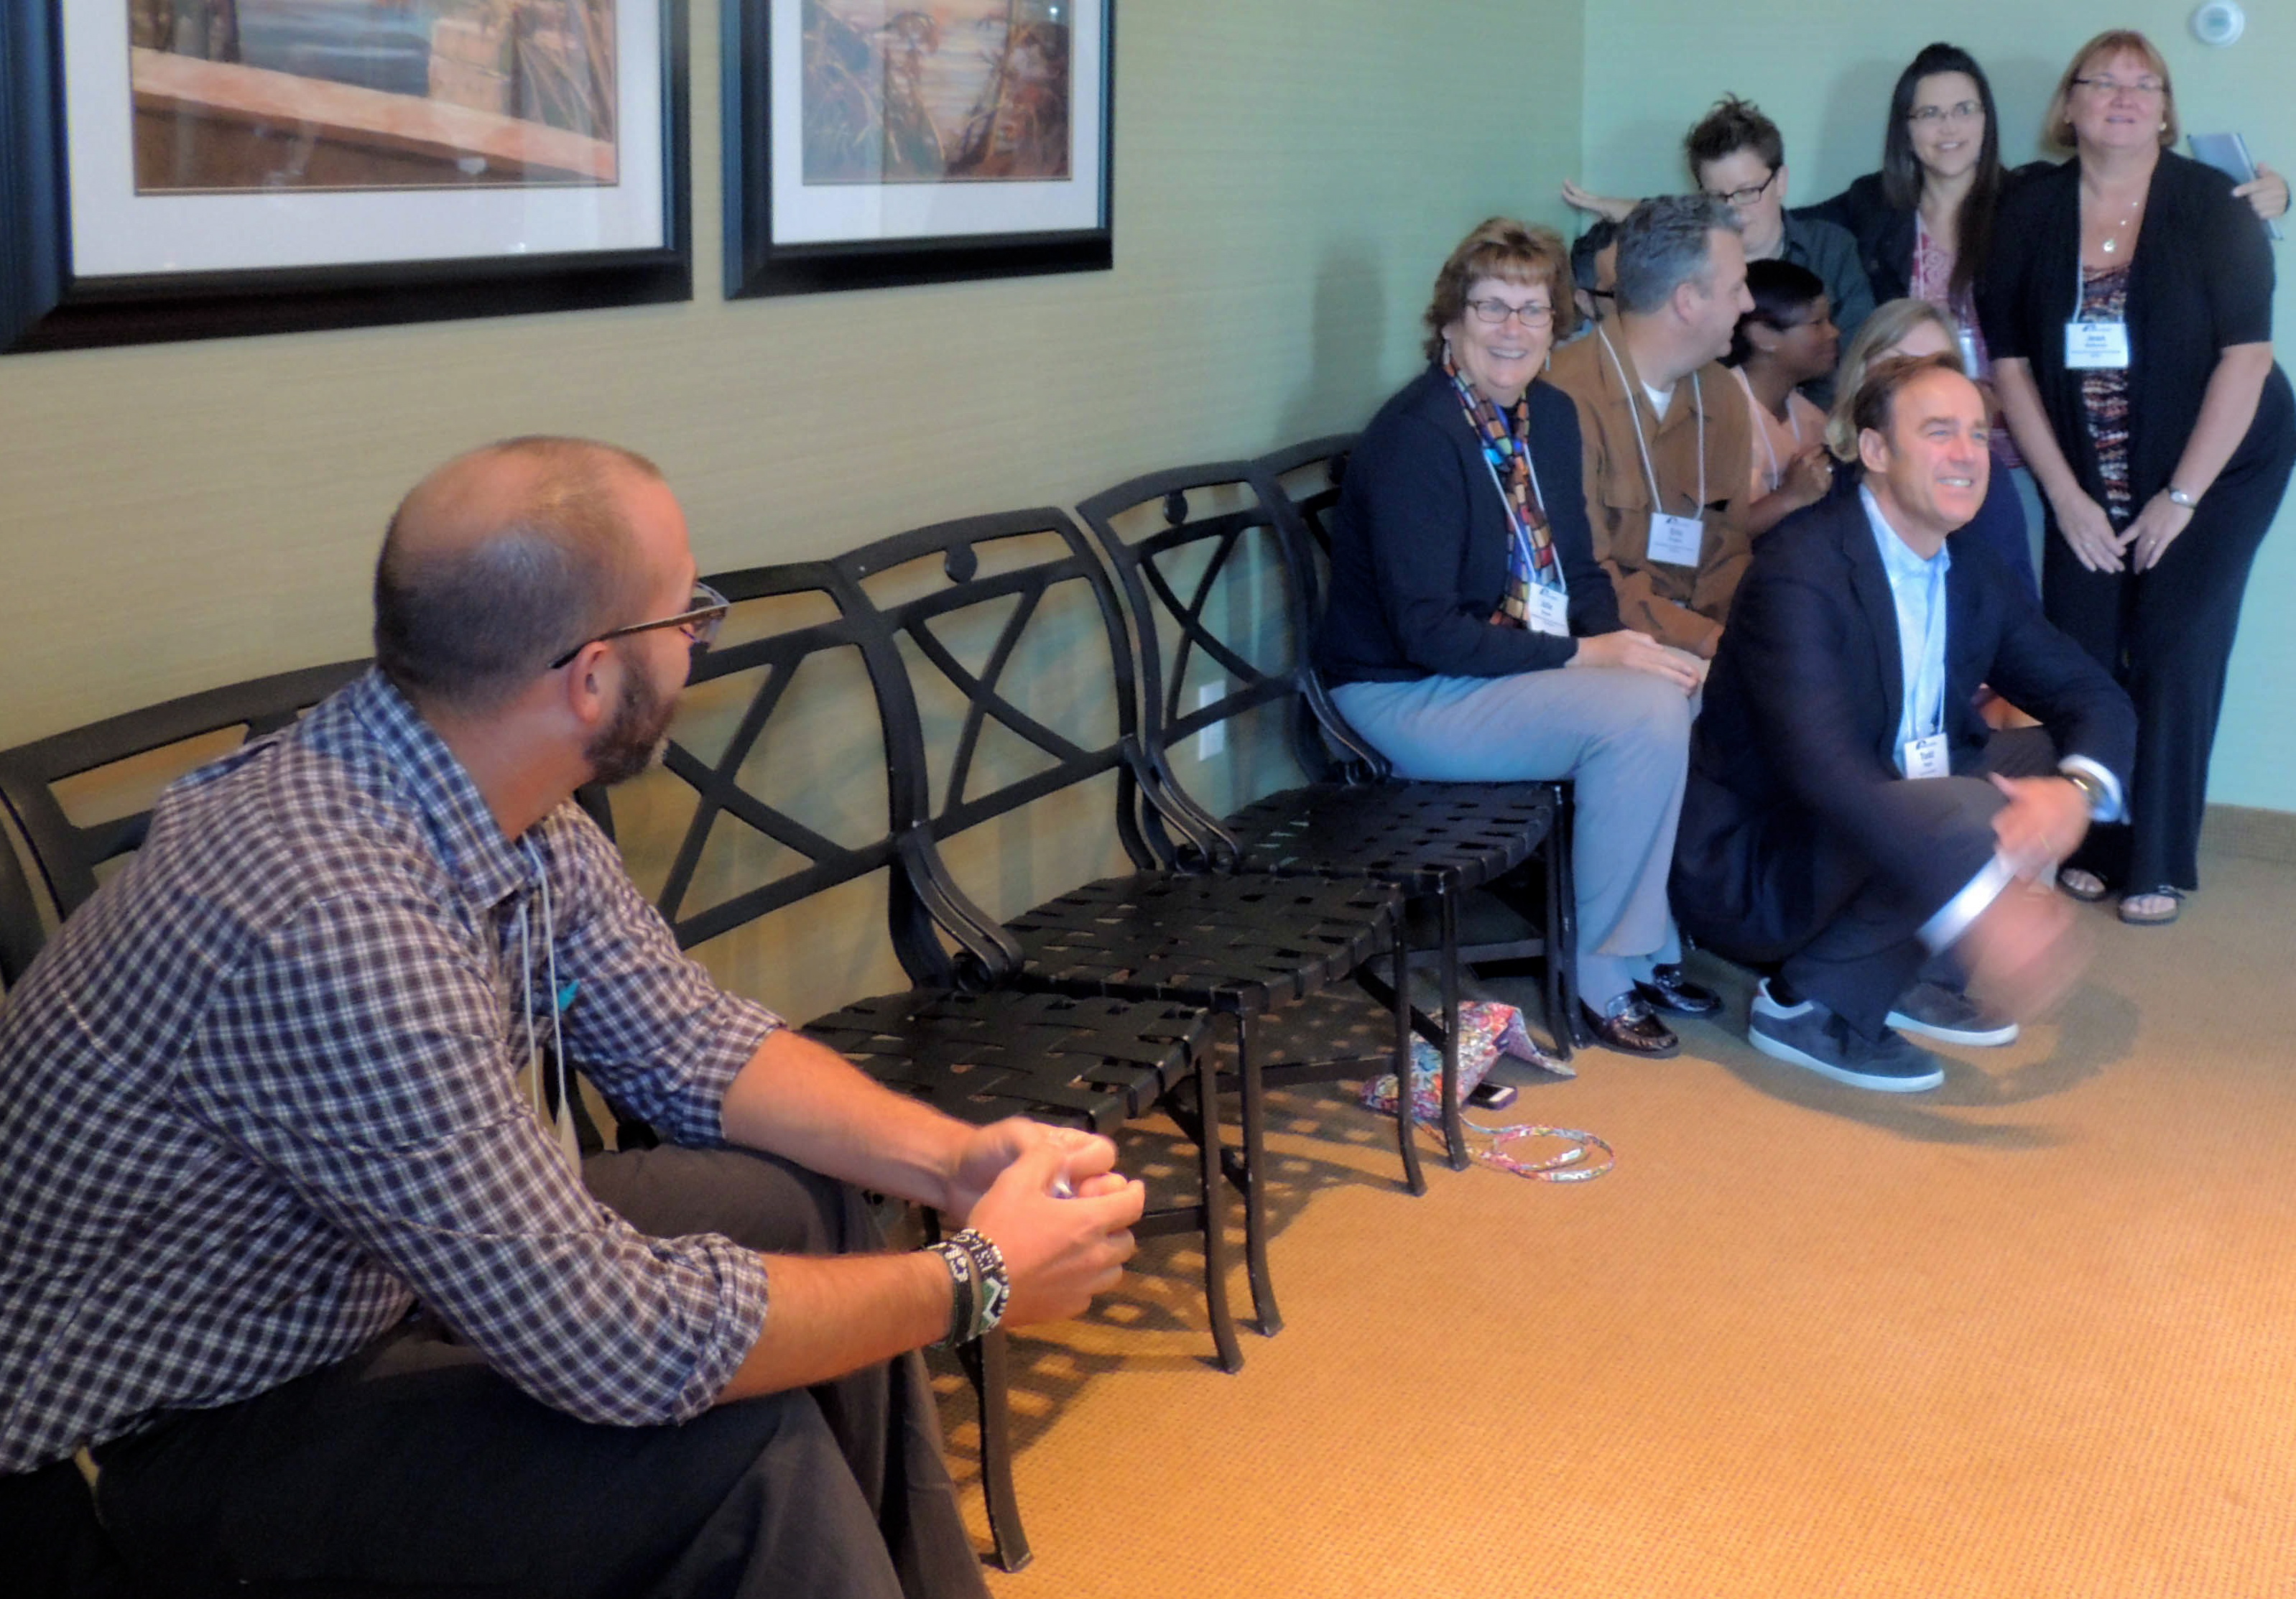 Workshop participants partake in the 10 chairs exercise during The Founder's Network for Smart Growth and Livable Communities workshop